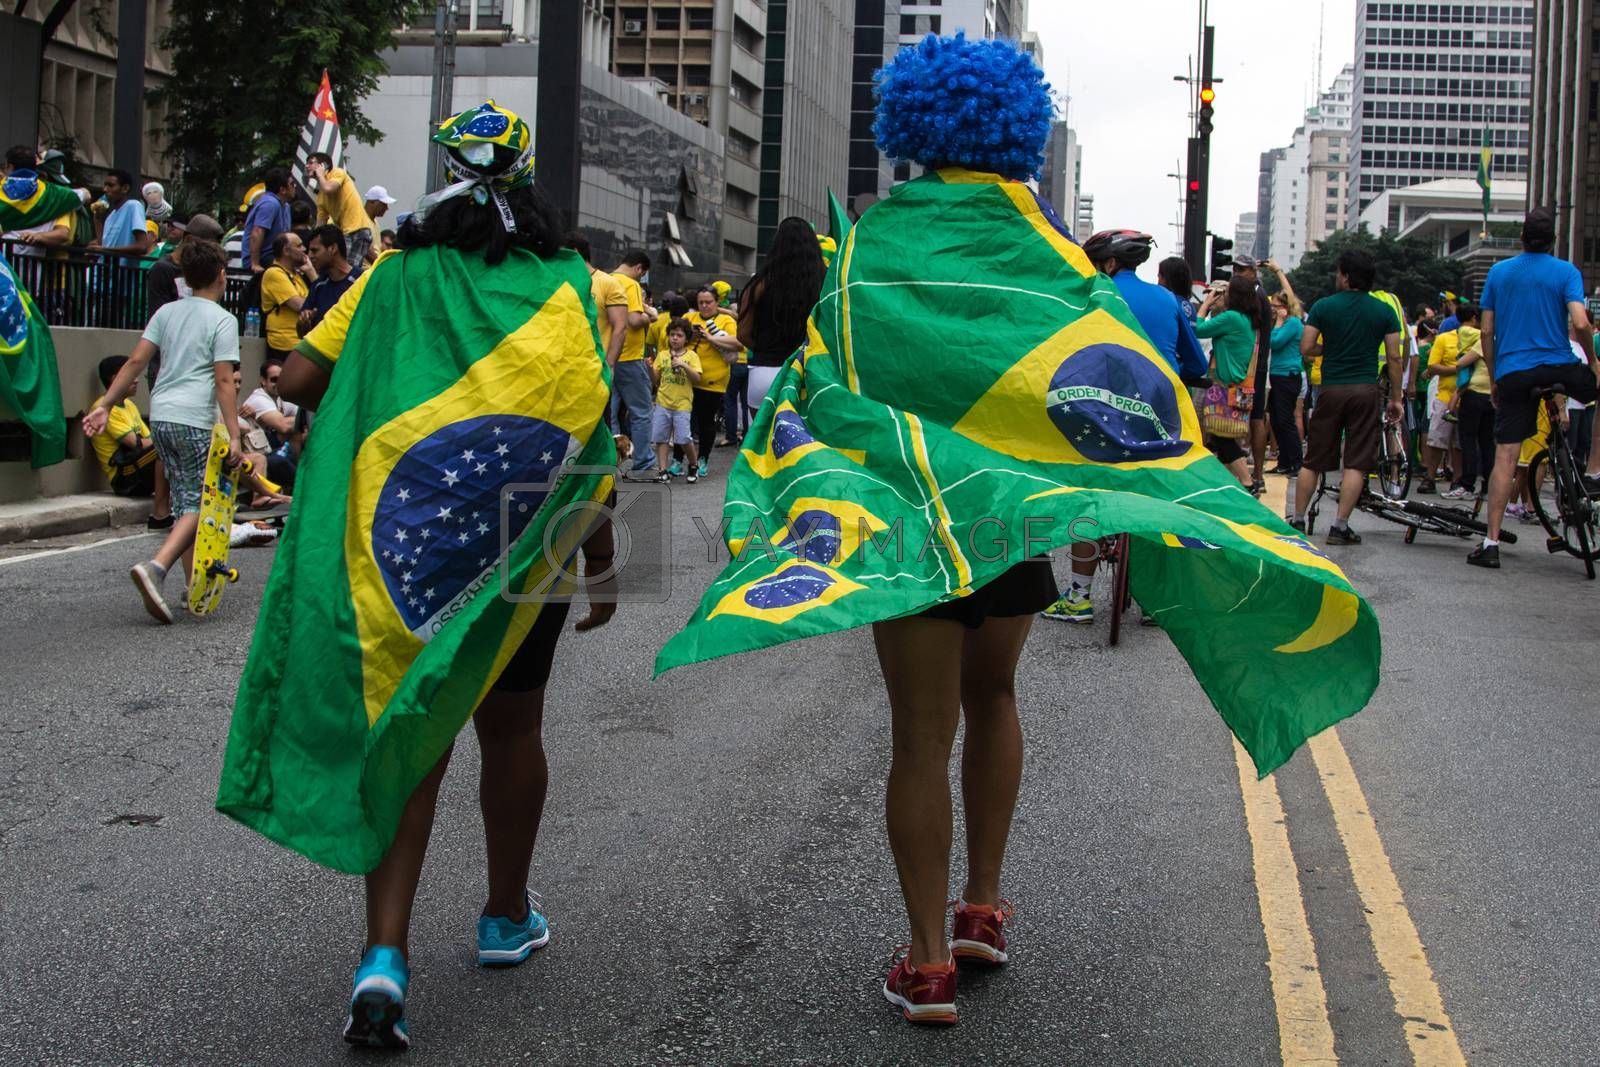 Sao Paulo Brazil March 13, 2016: One unidentified group of people in the biggest protest against federal government corruption in Sao Paulo.